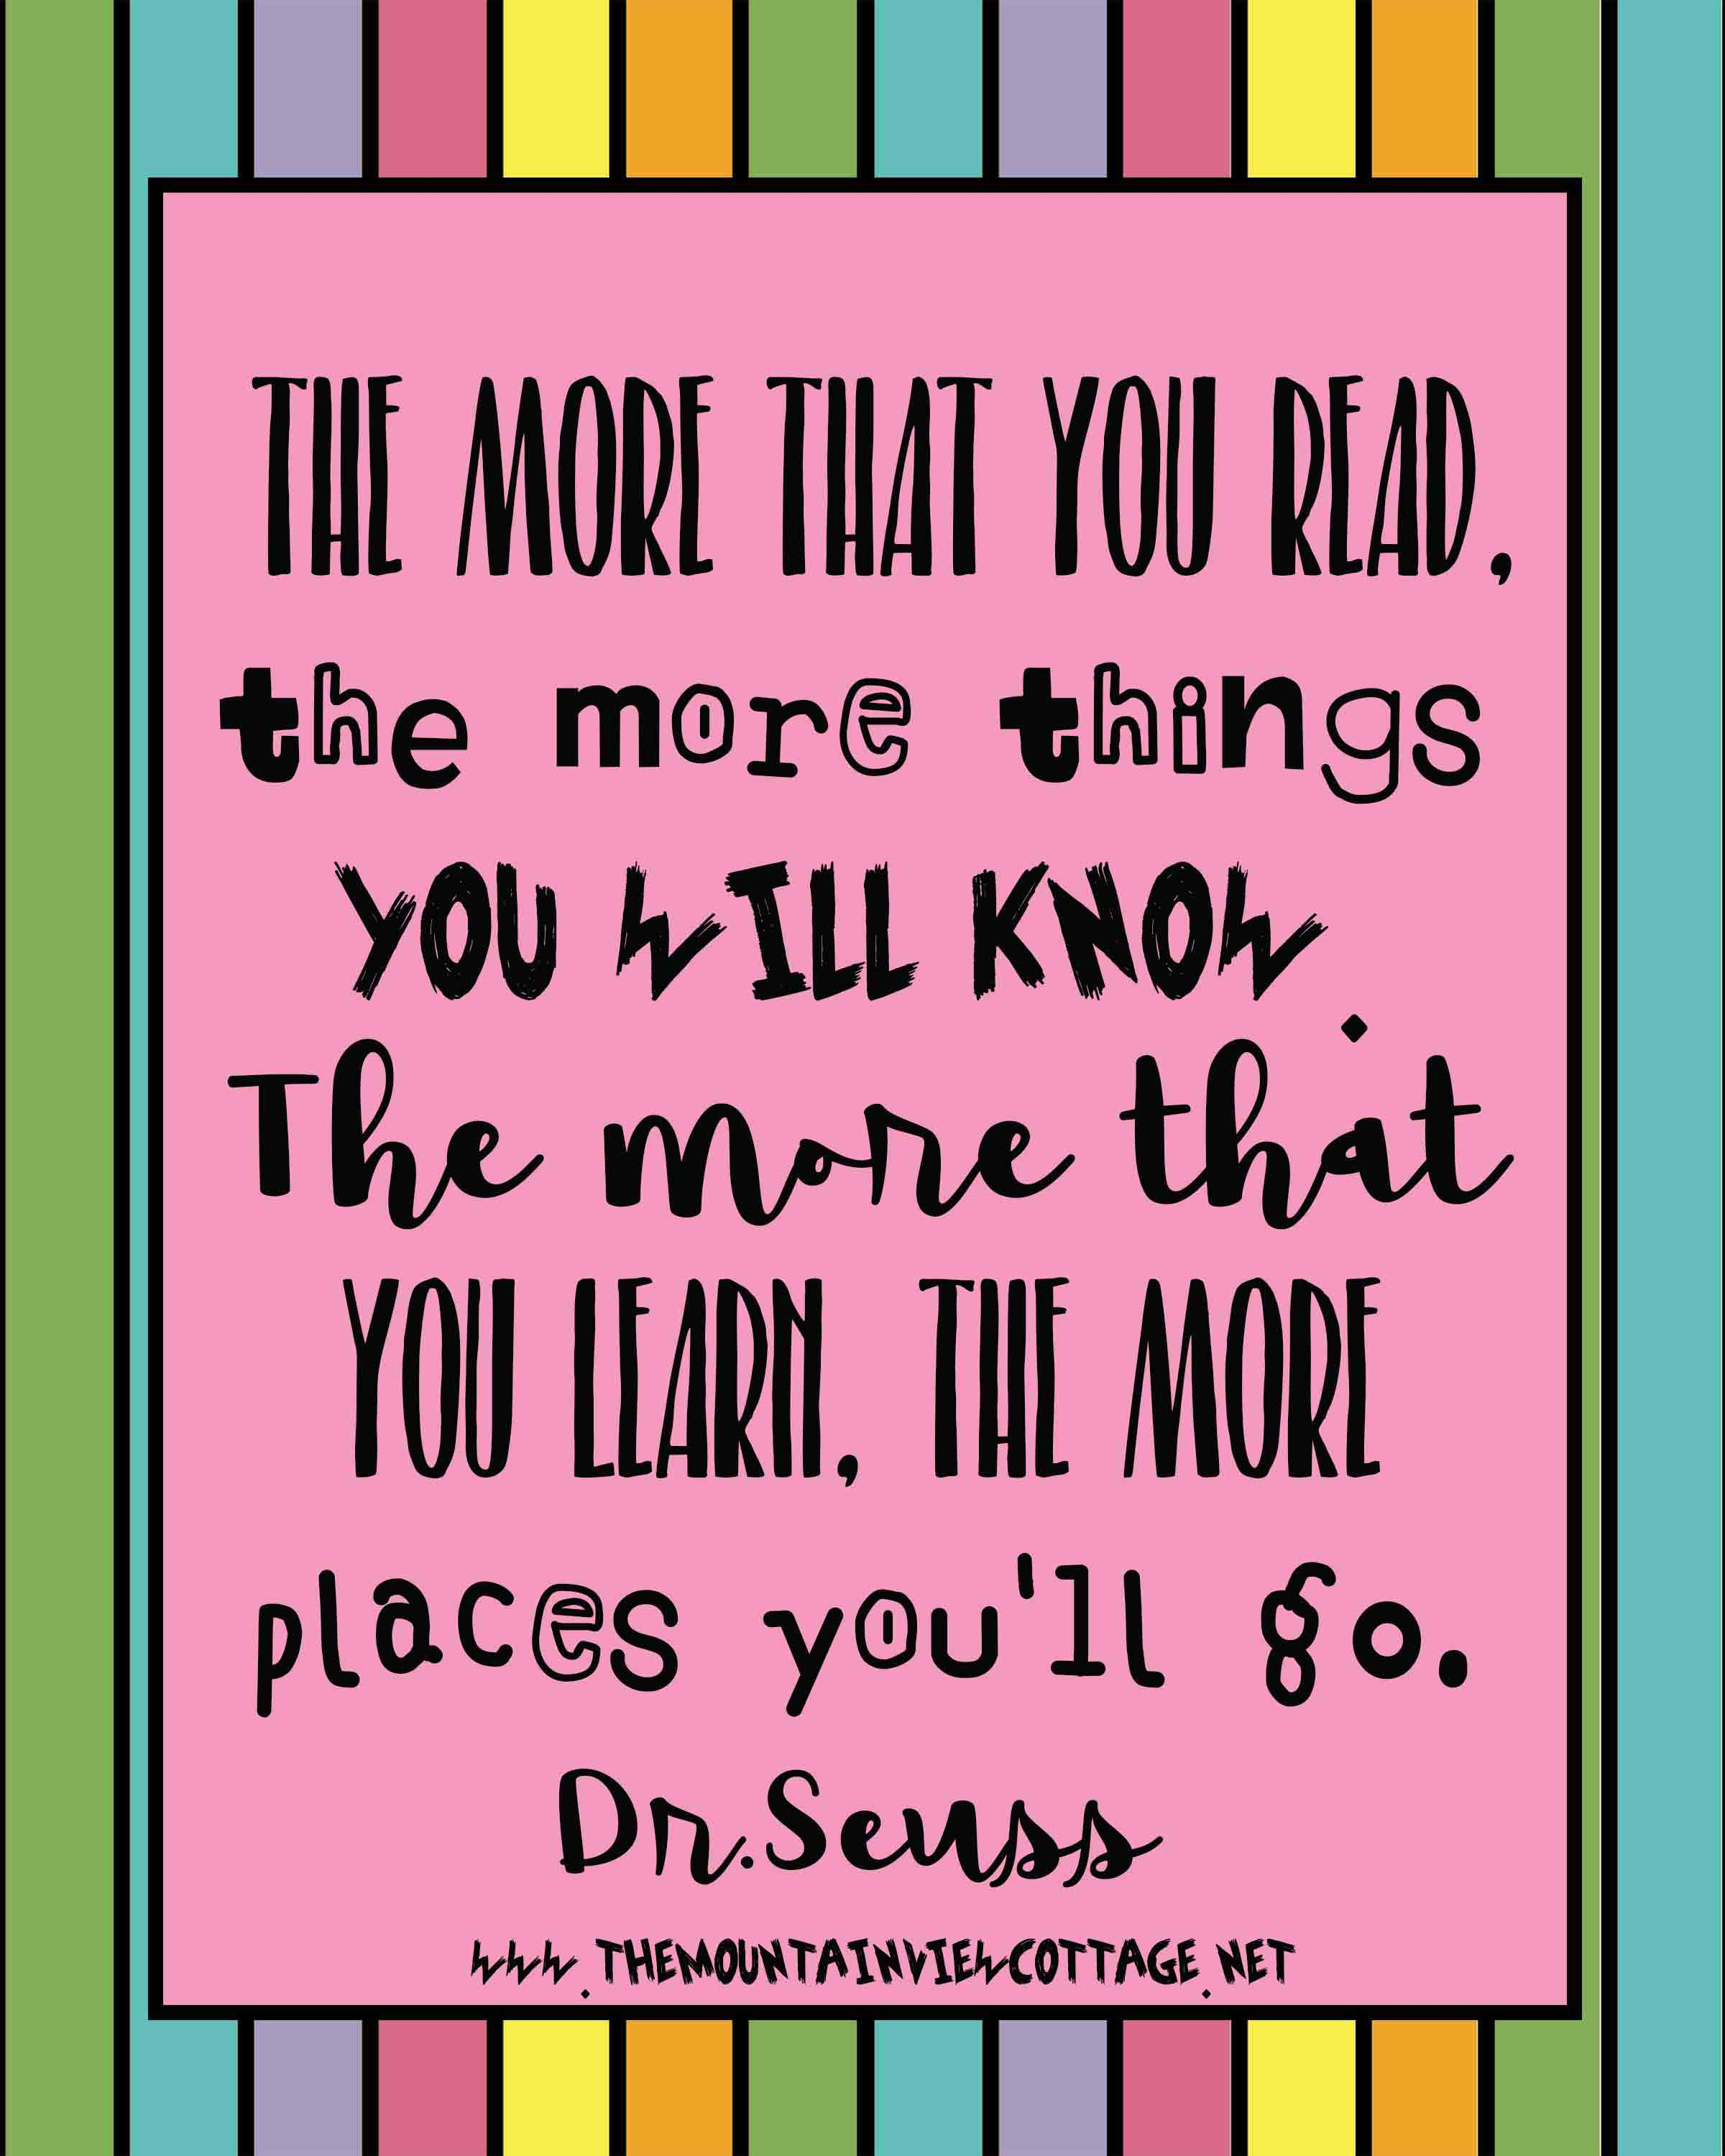 Dr.Seuss quotes about reading-reading quotes-book quotes-the more you read the more things you will know the more that you learn the more places you'll go